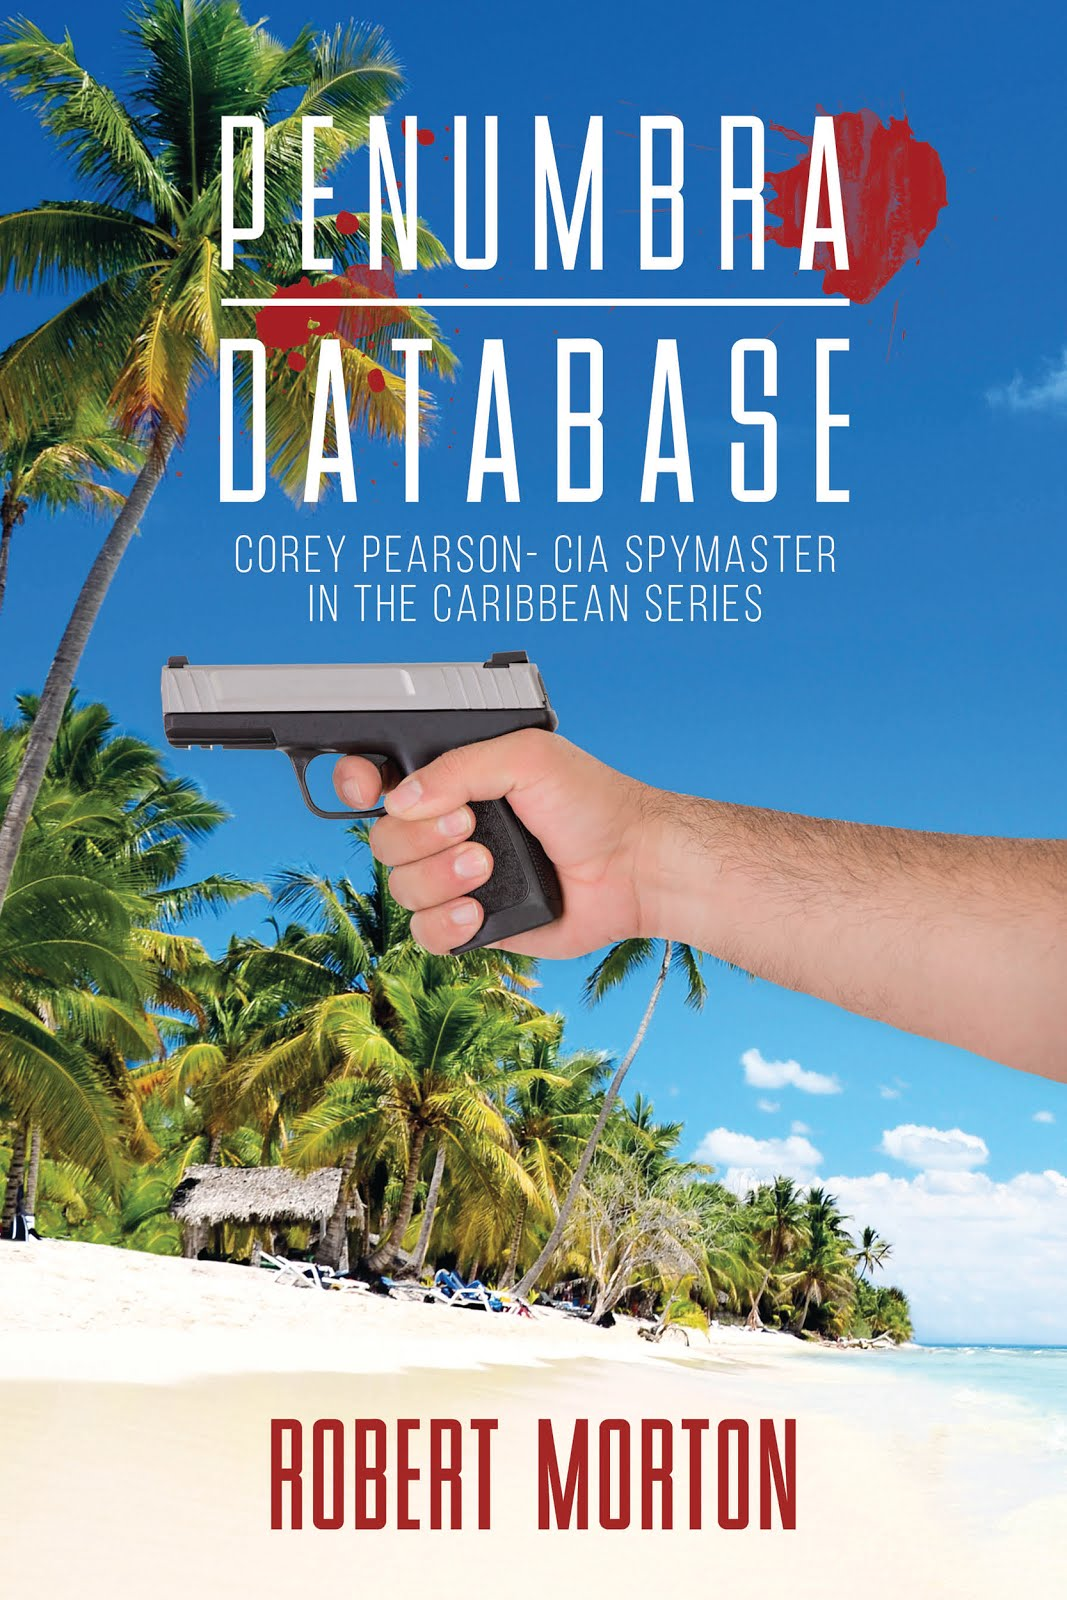 Get this Caribbean/Florida Keys spy thriller on Kindle for only $2.99!